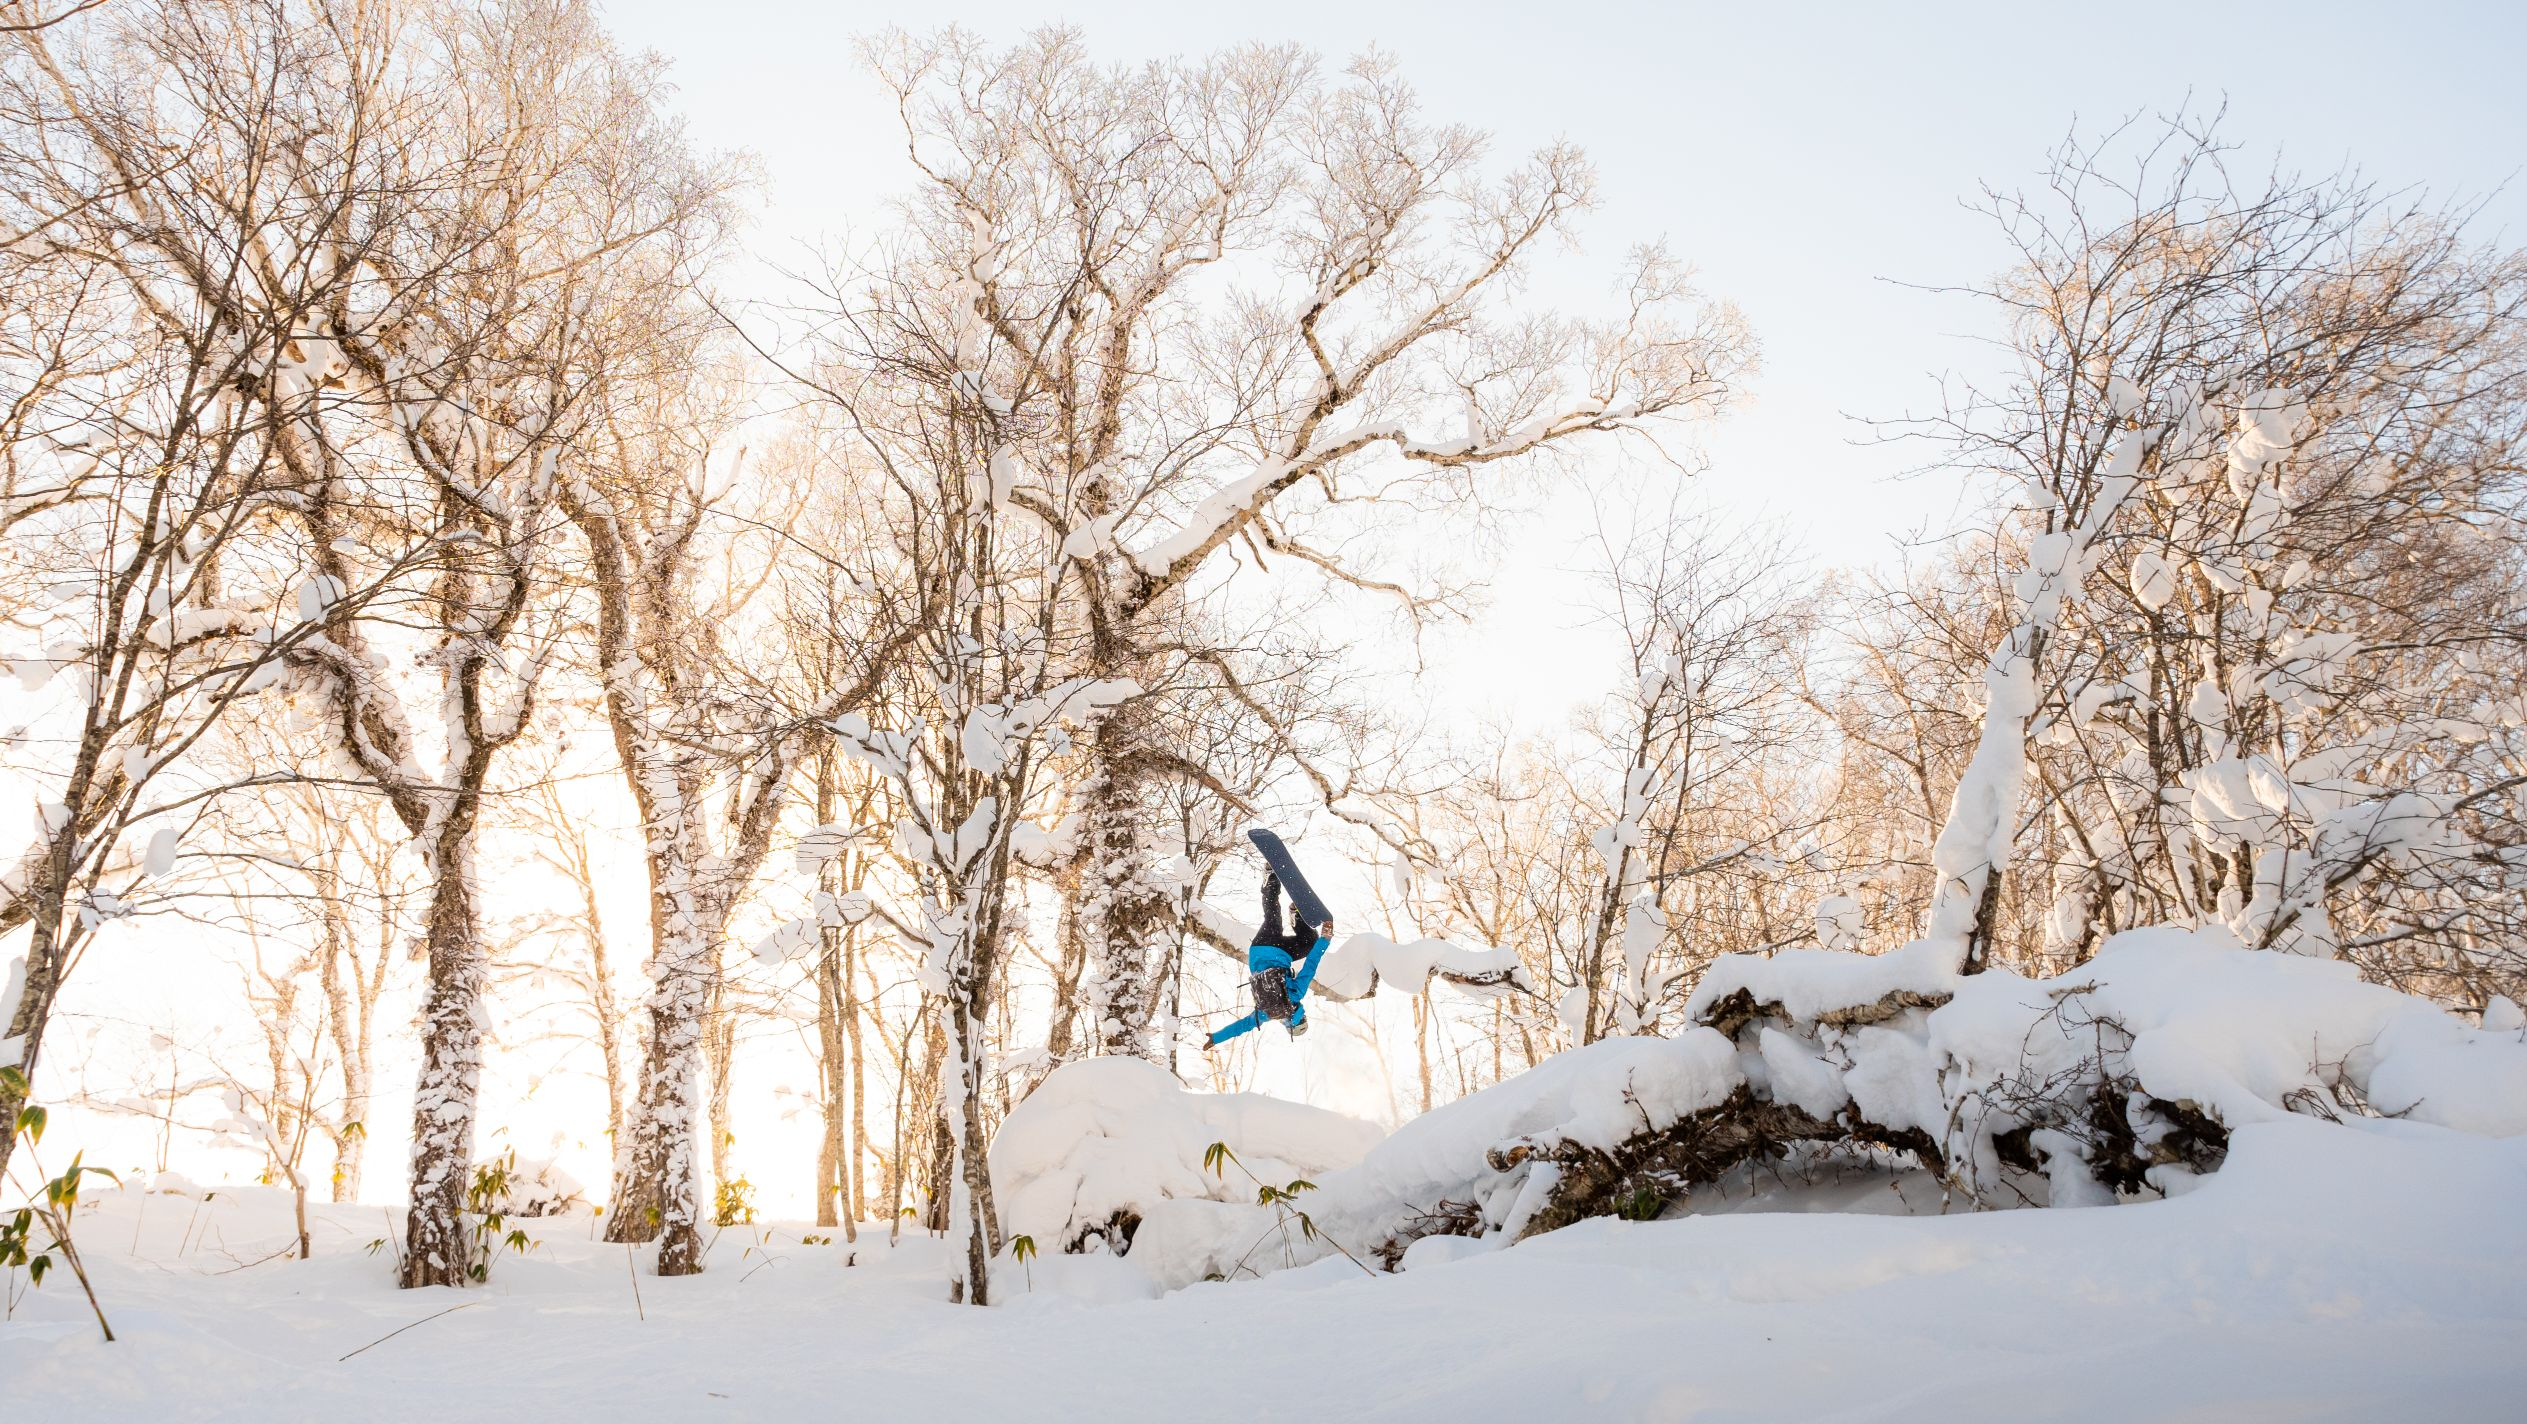 Snowboarder backflipping through trees in snowy setting.